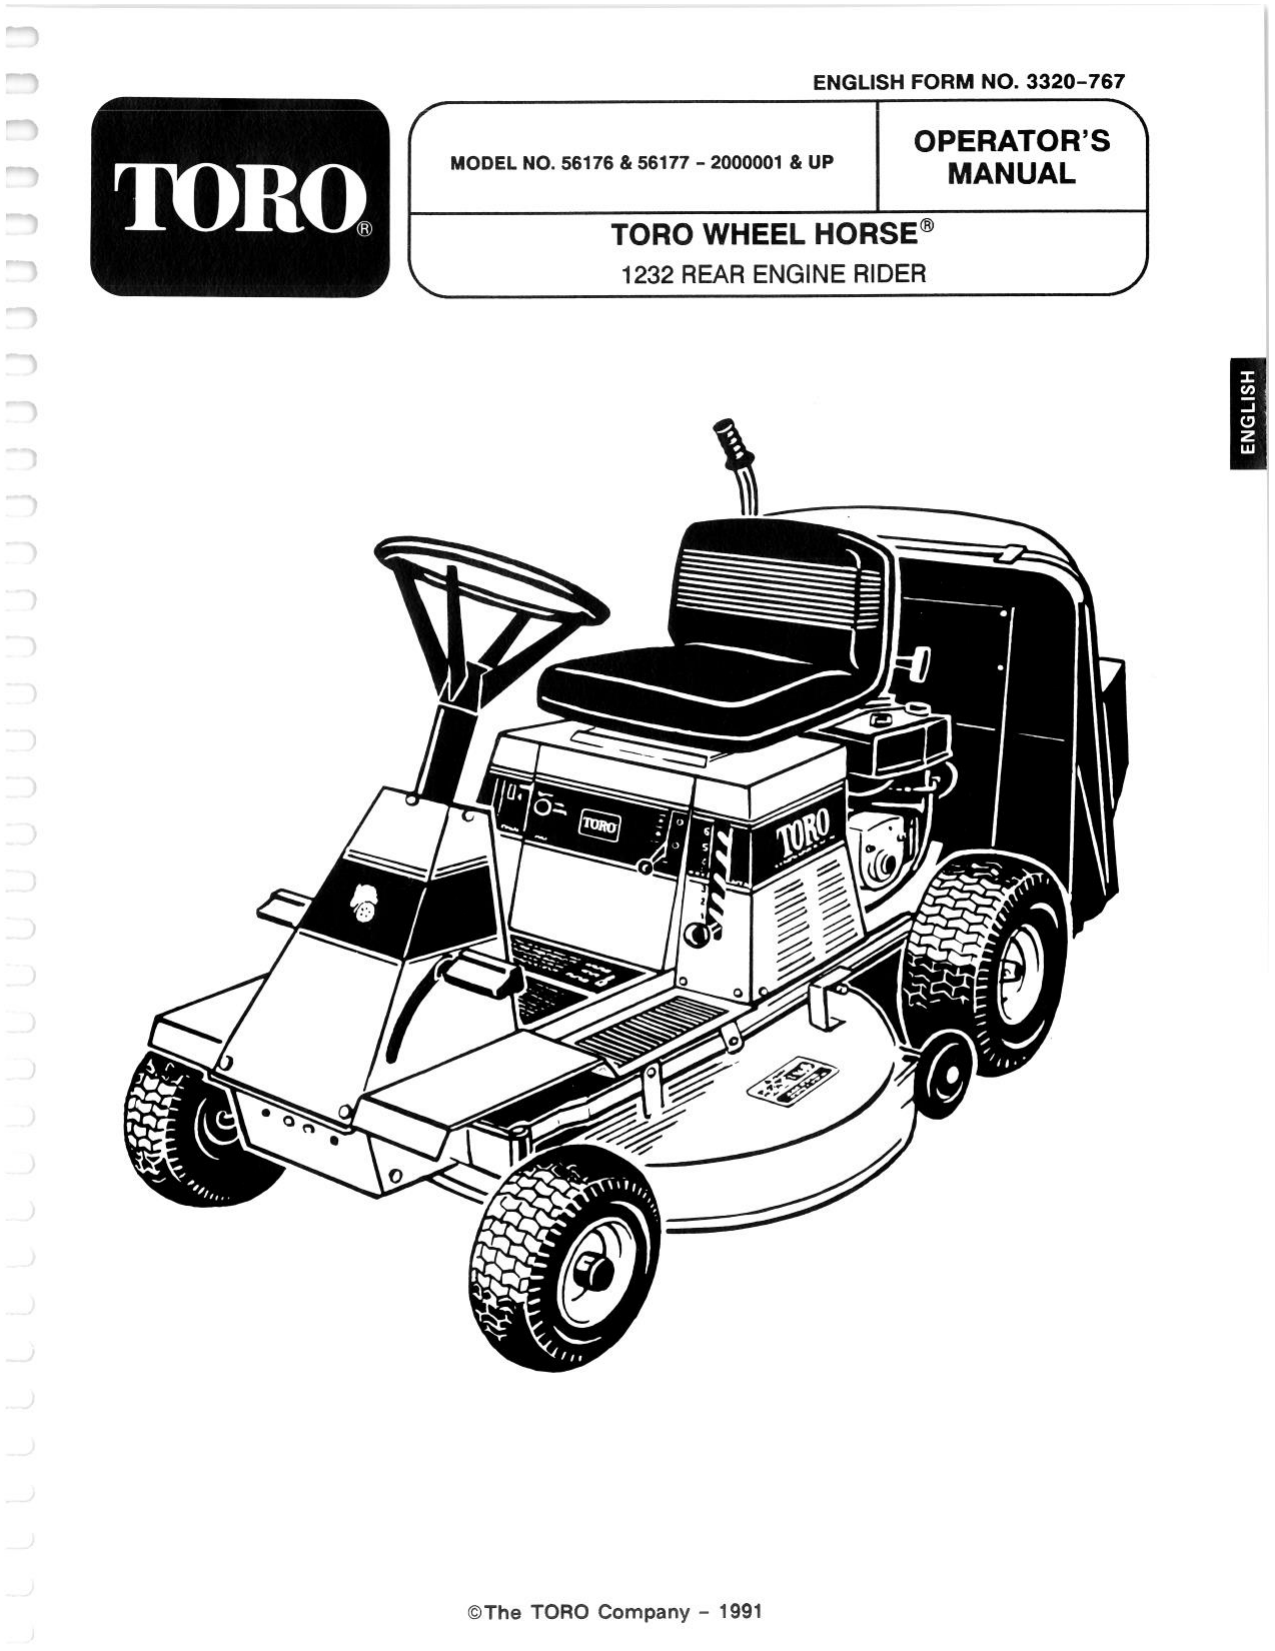 Toro 12-32 Rear Engine Rider Riding Product Operator's